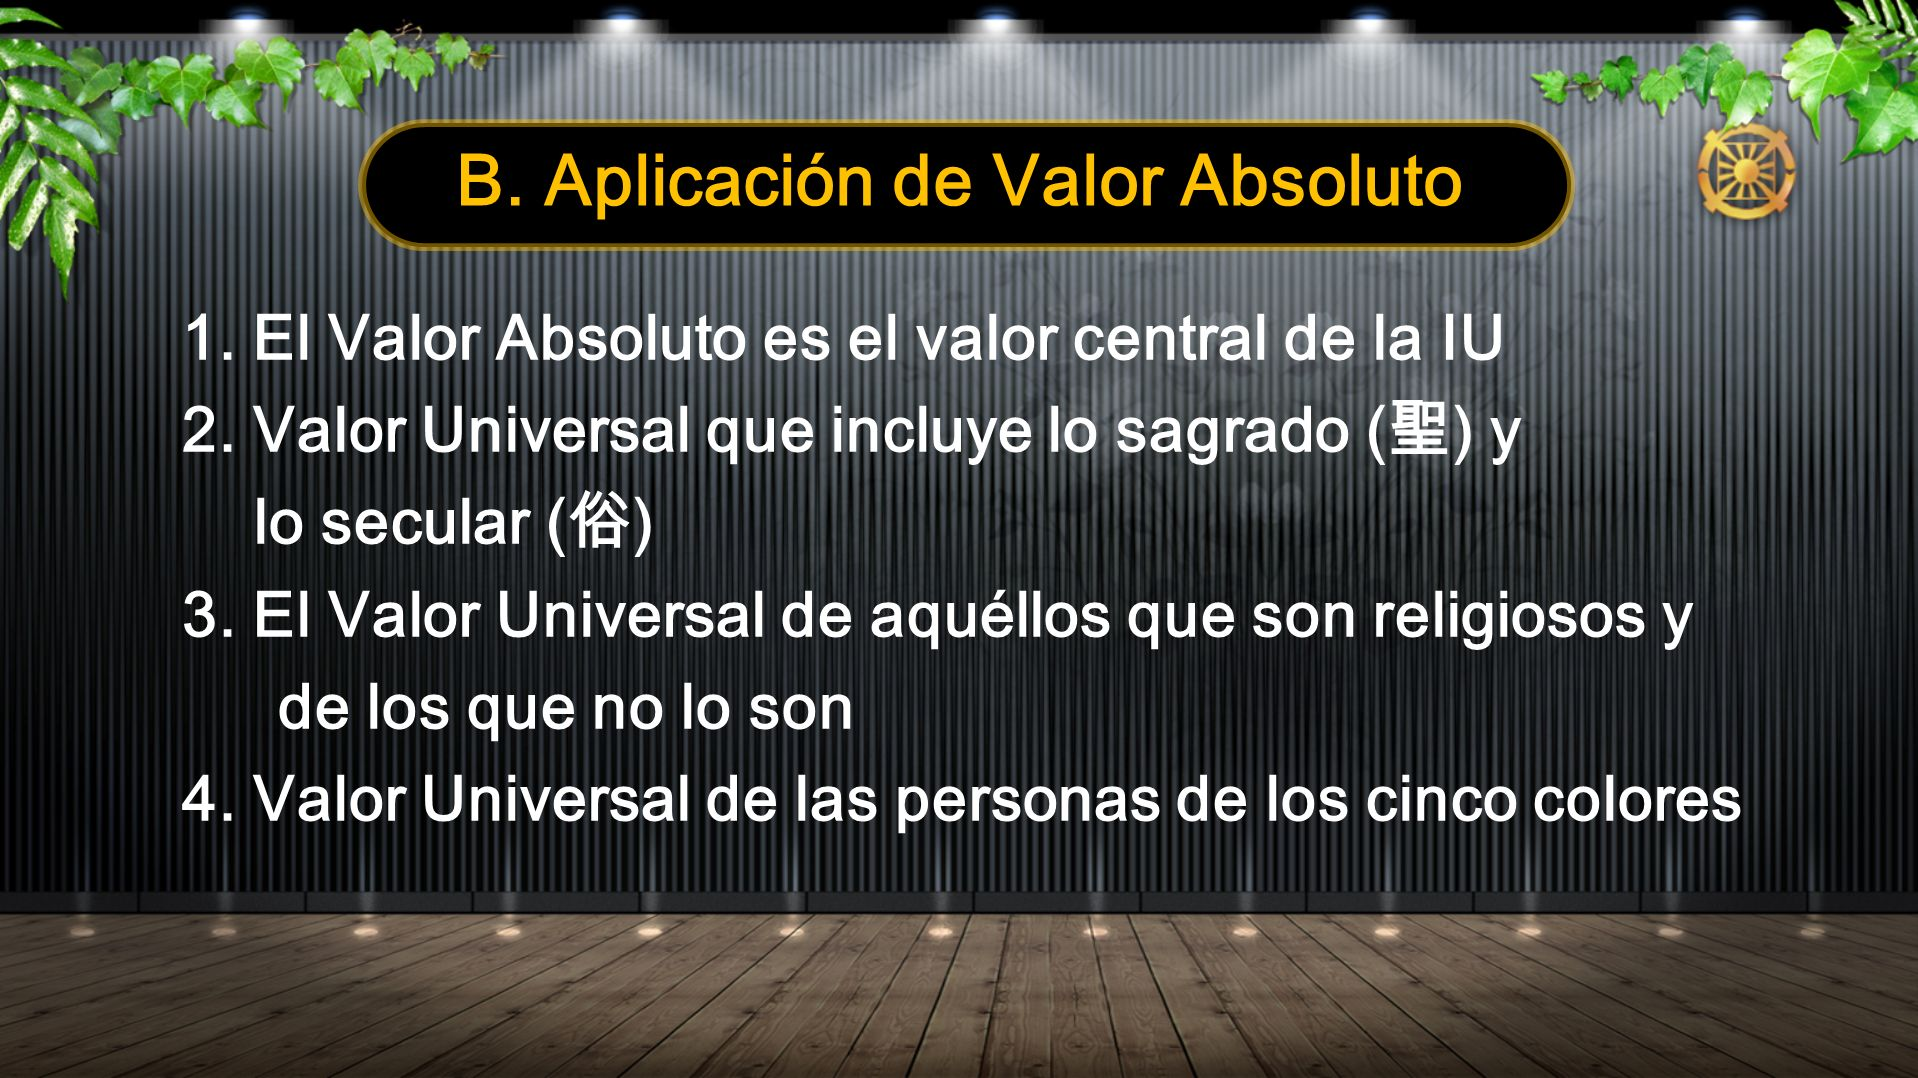 B. Aplicación de Valor Absoluto